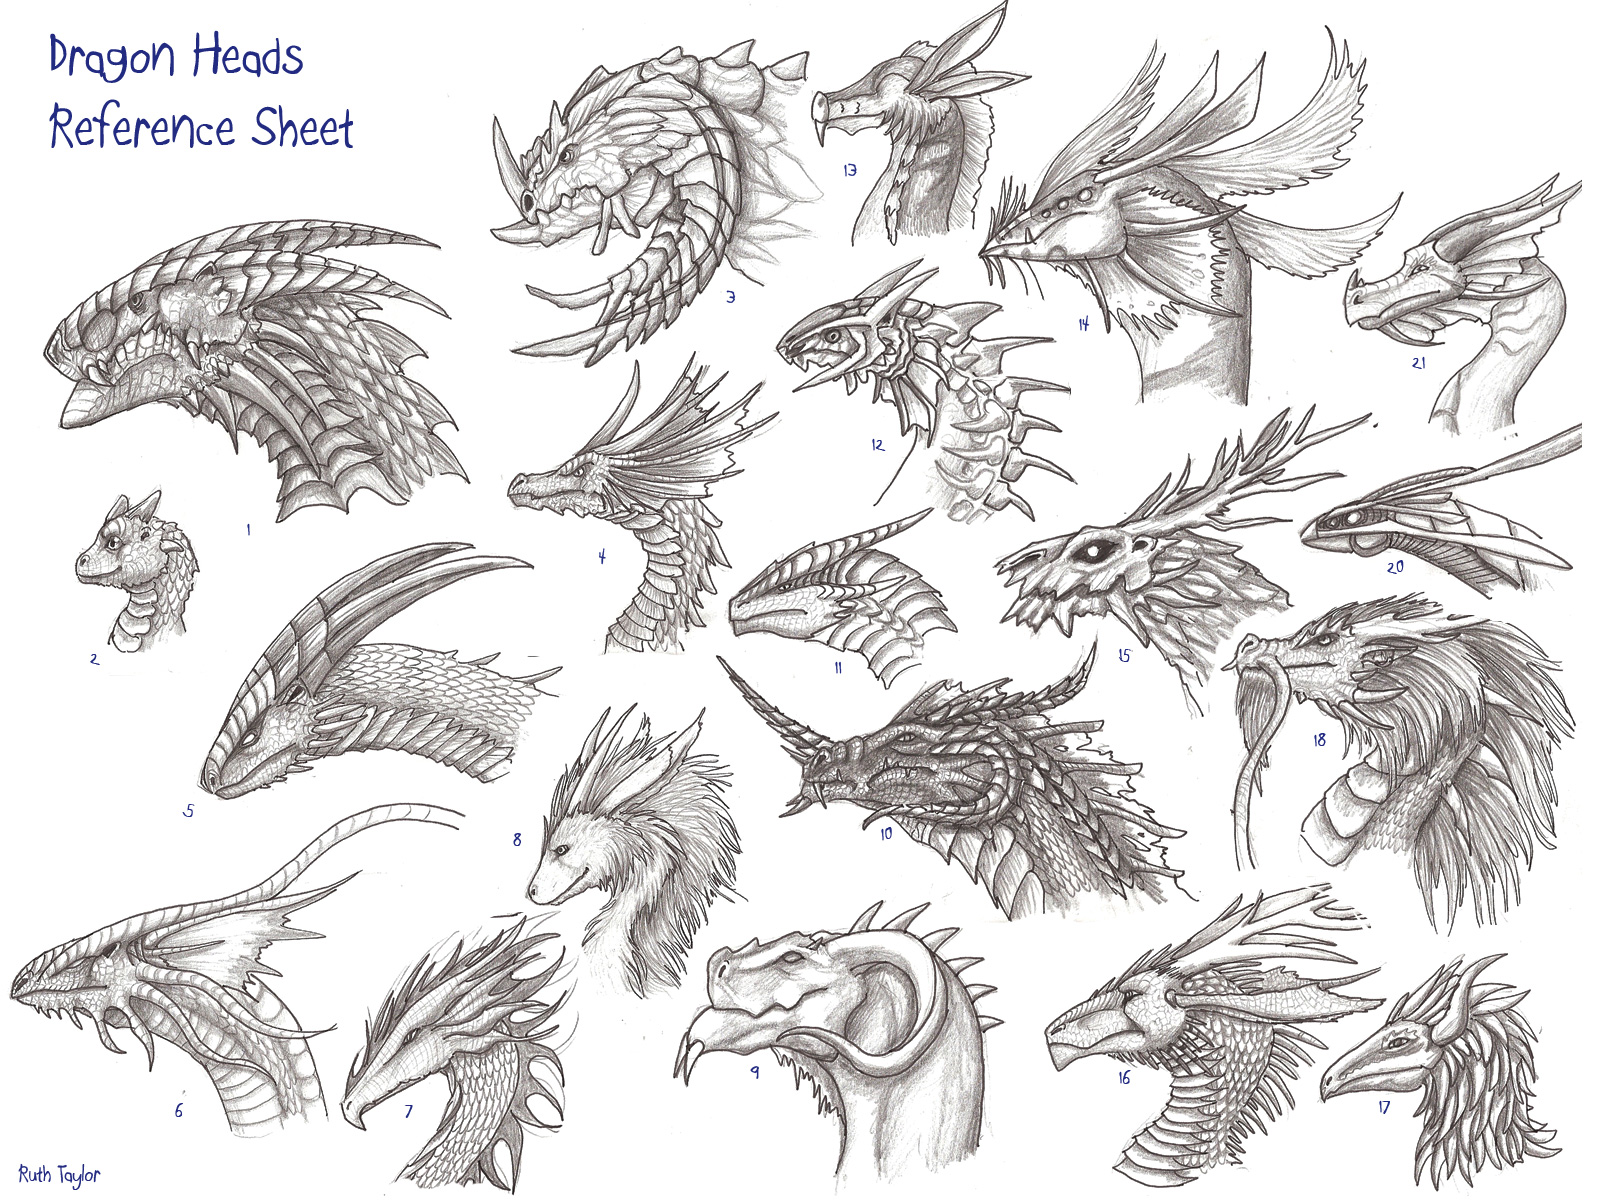 The dragonheads reference sheet itâs to inspire dragon artists and to help people who want to learn how to draw dragons